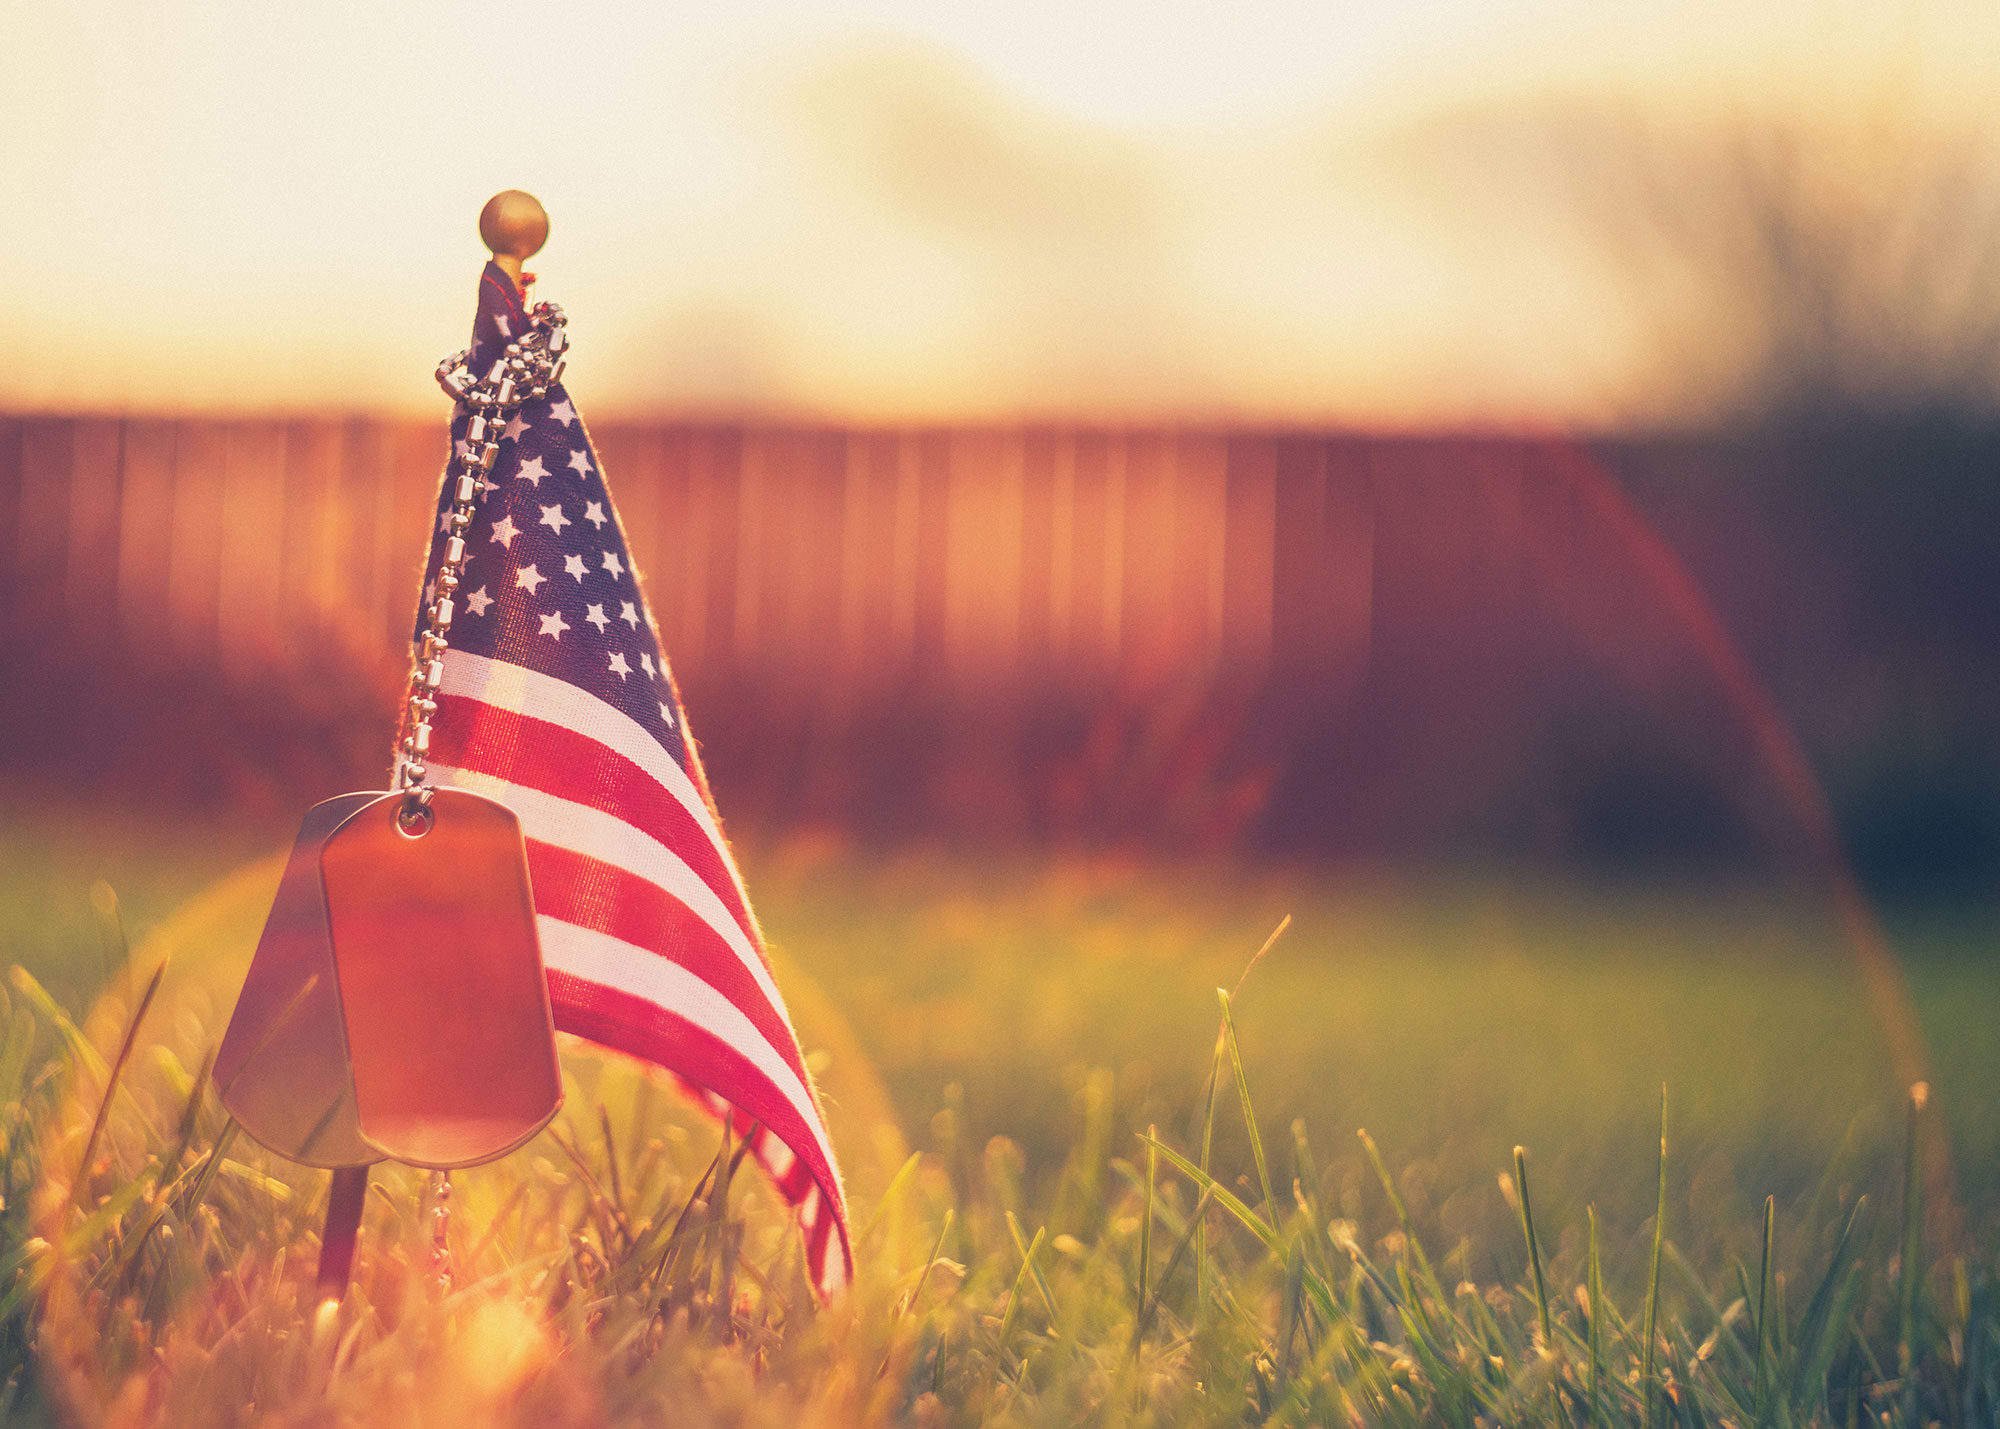 All Gave Some. Some Gave All | Simplifying the Market